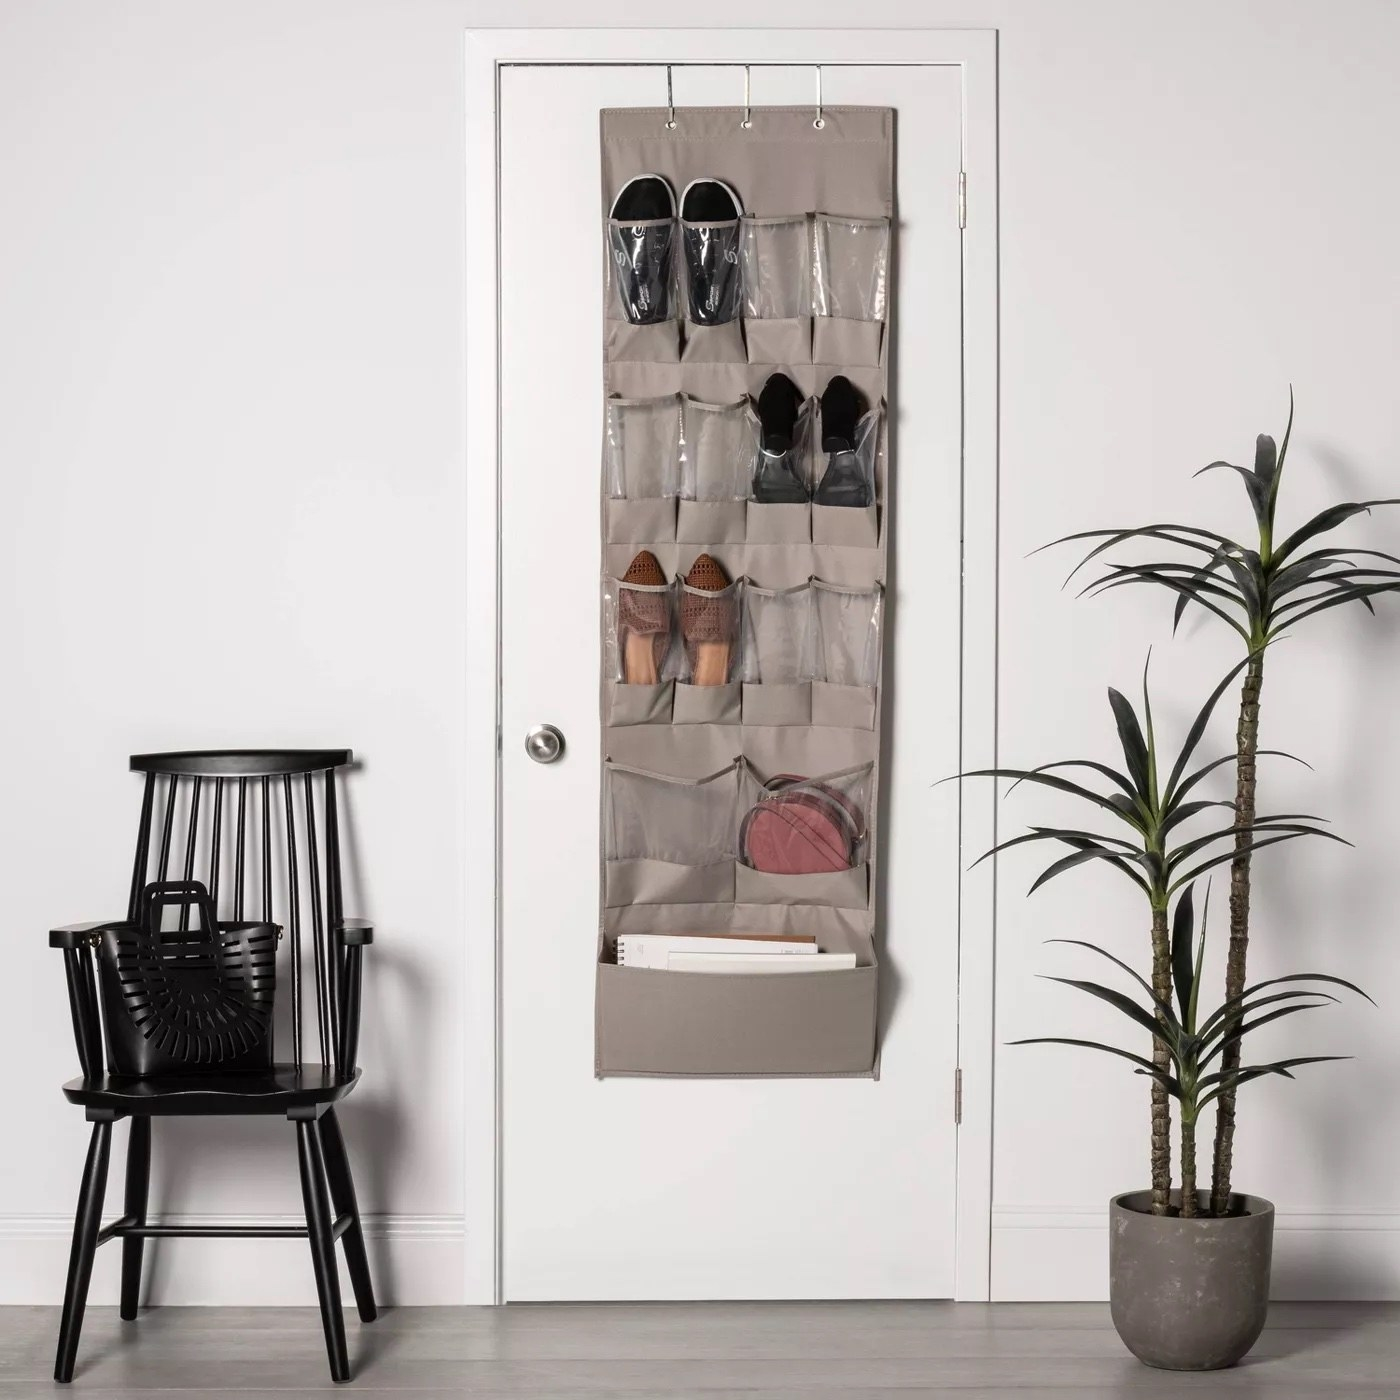 The overdoor organizer with various items inside